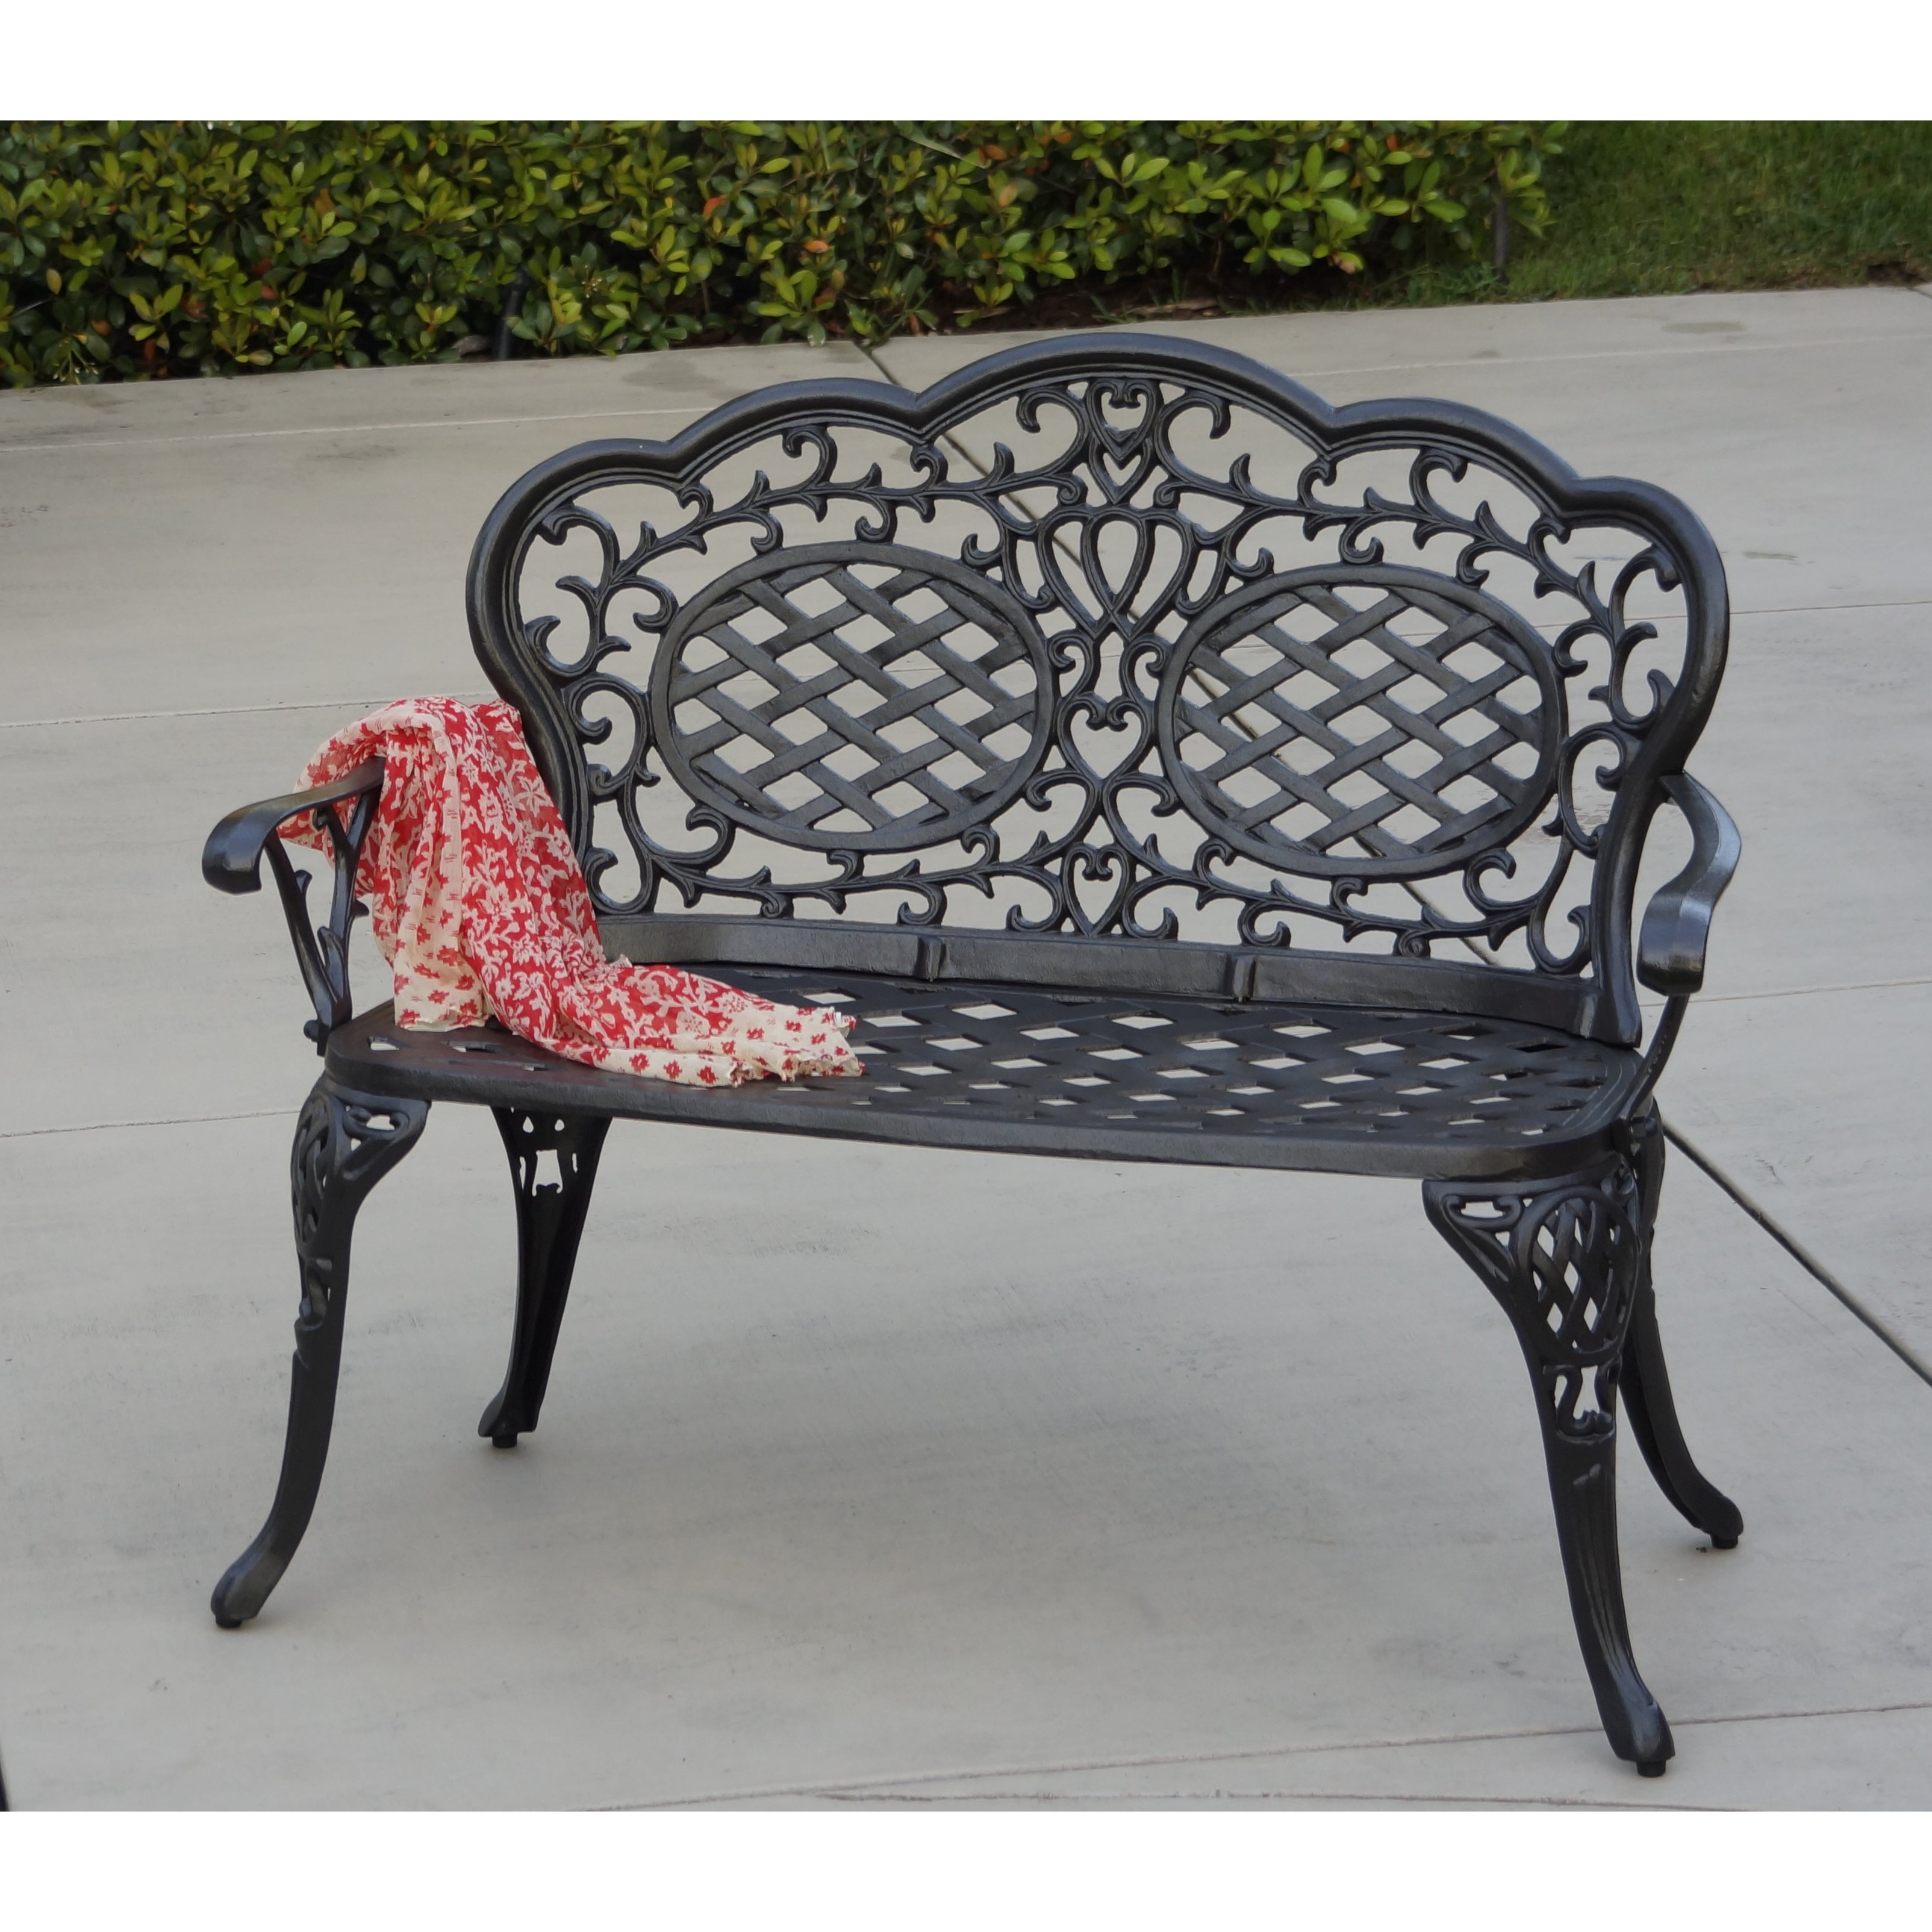 Attrayant Shop Plazzo Cast Aluminum Garden Bench   Free Shipping Today    Overstock.com   15049428